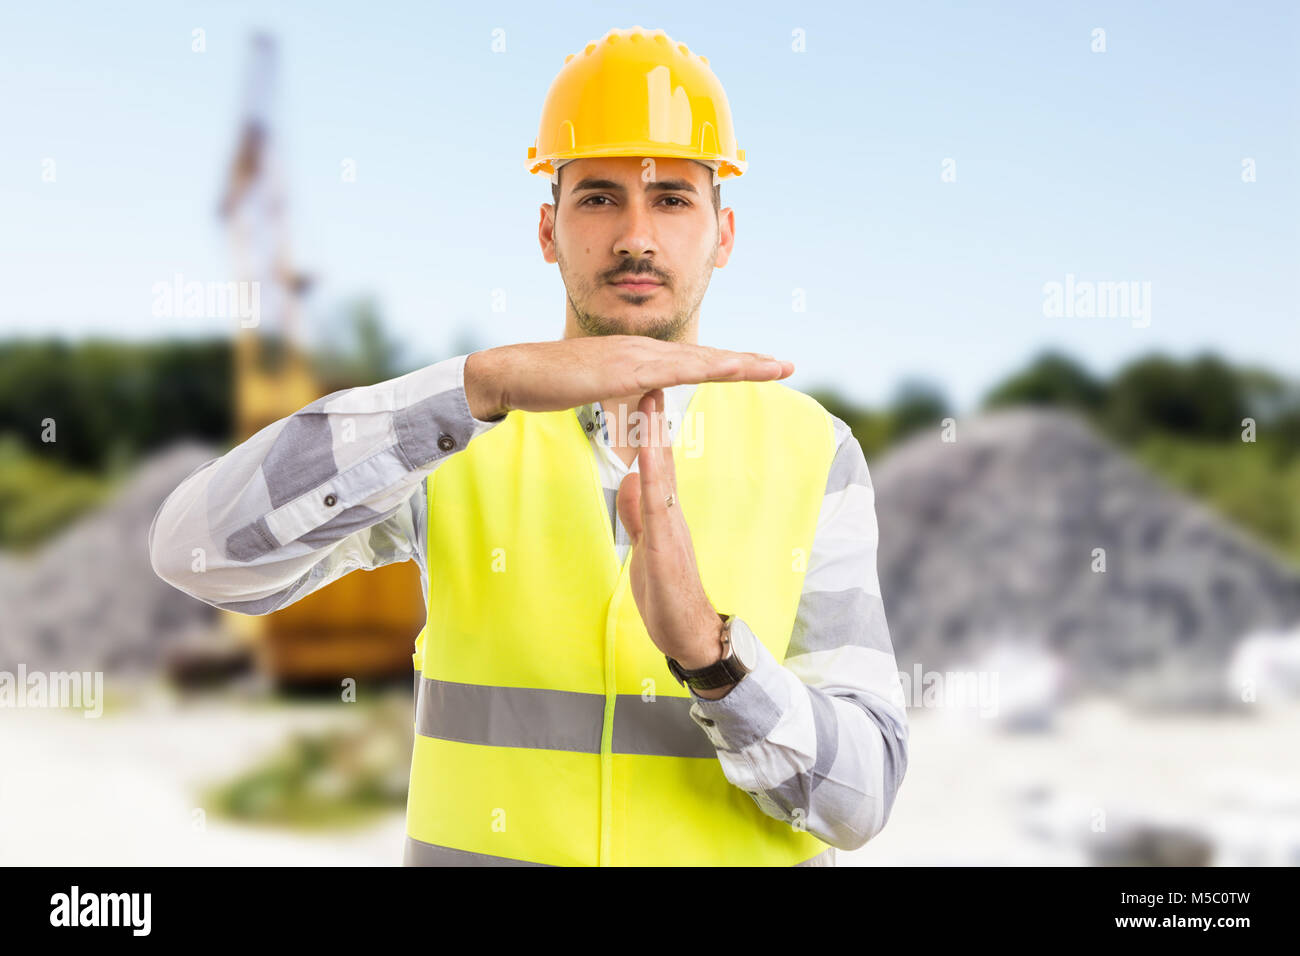 Architect or engineer making time out pause break gesture on construction site or pit outdoors - Stock Image